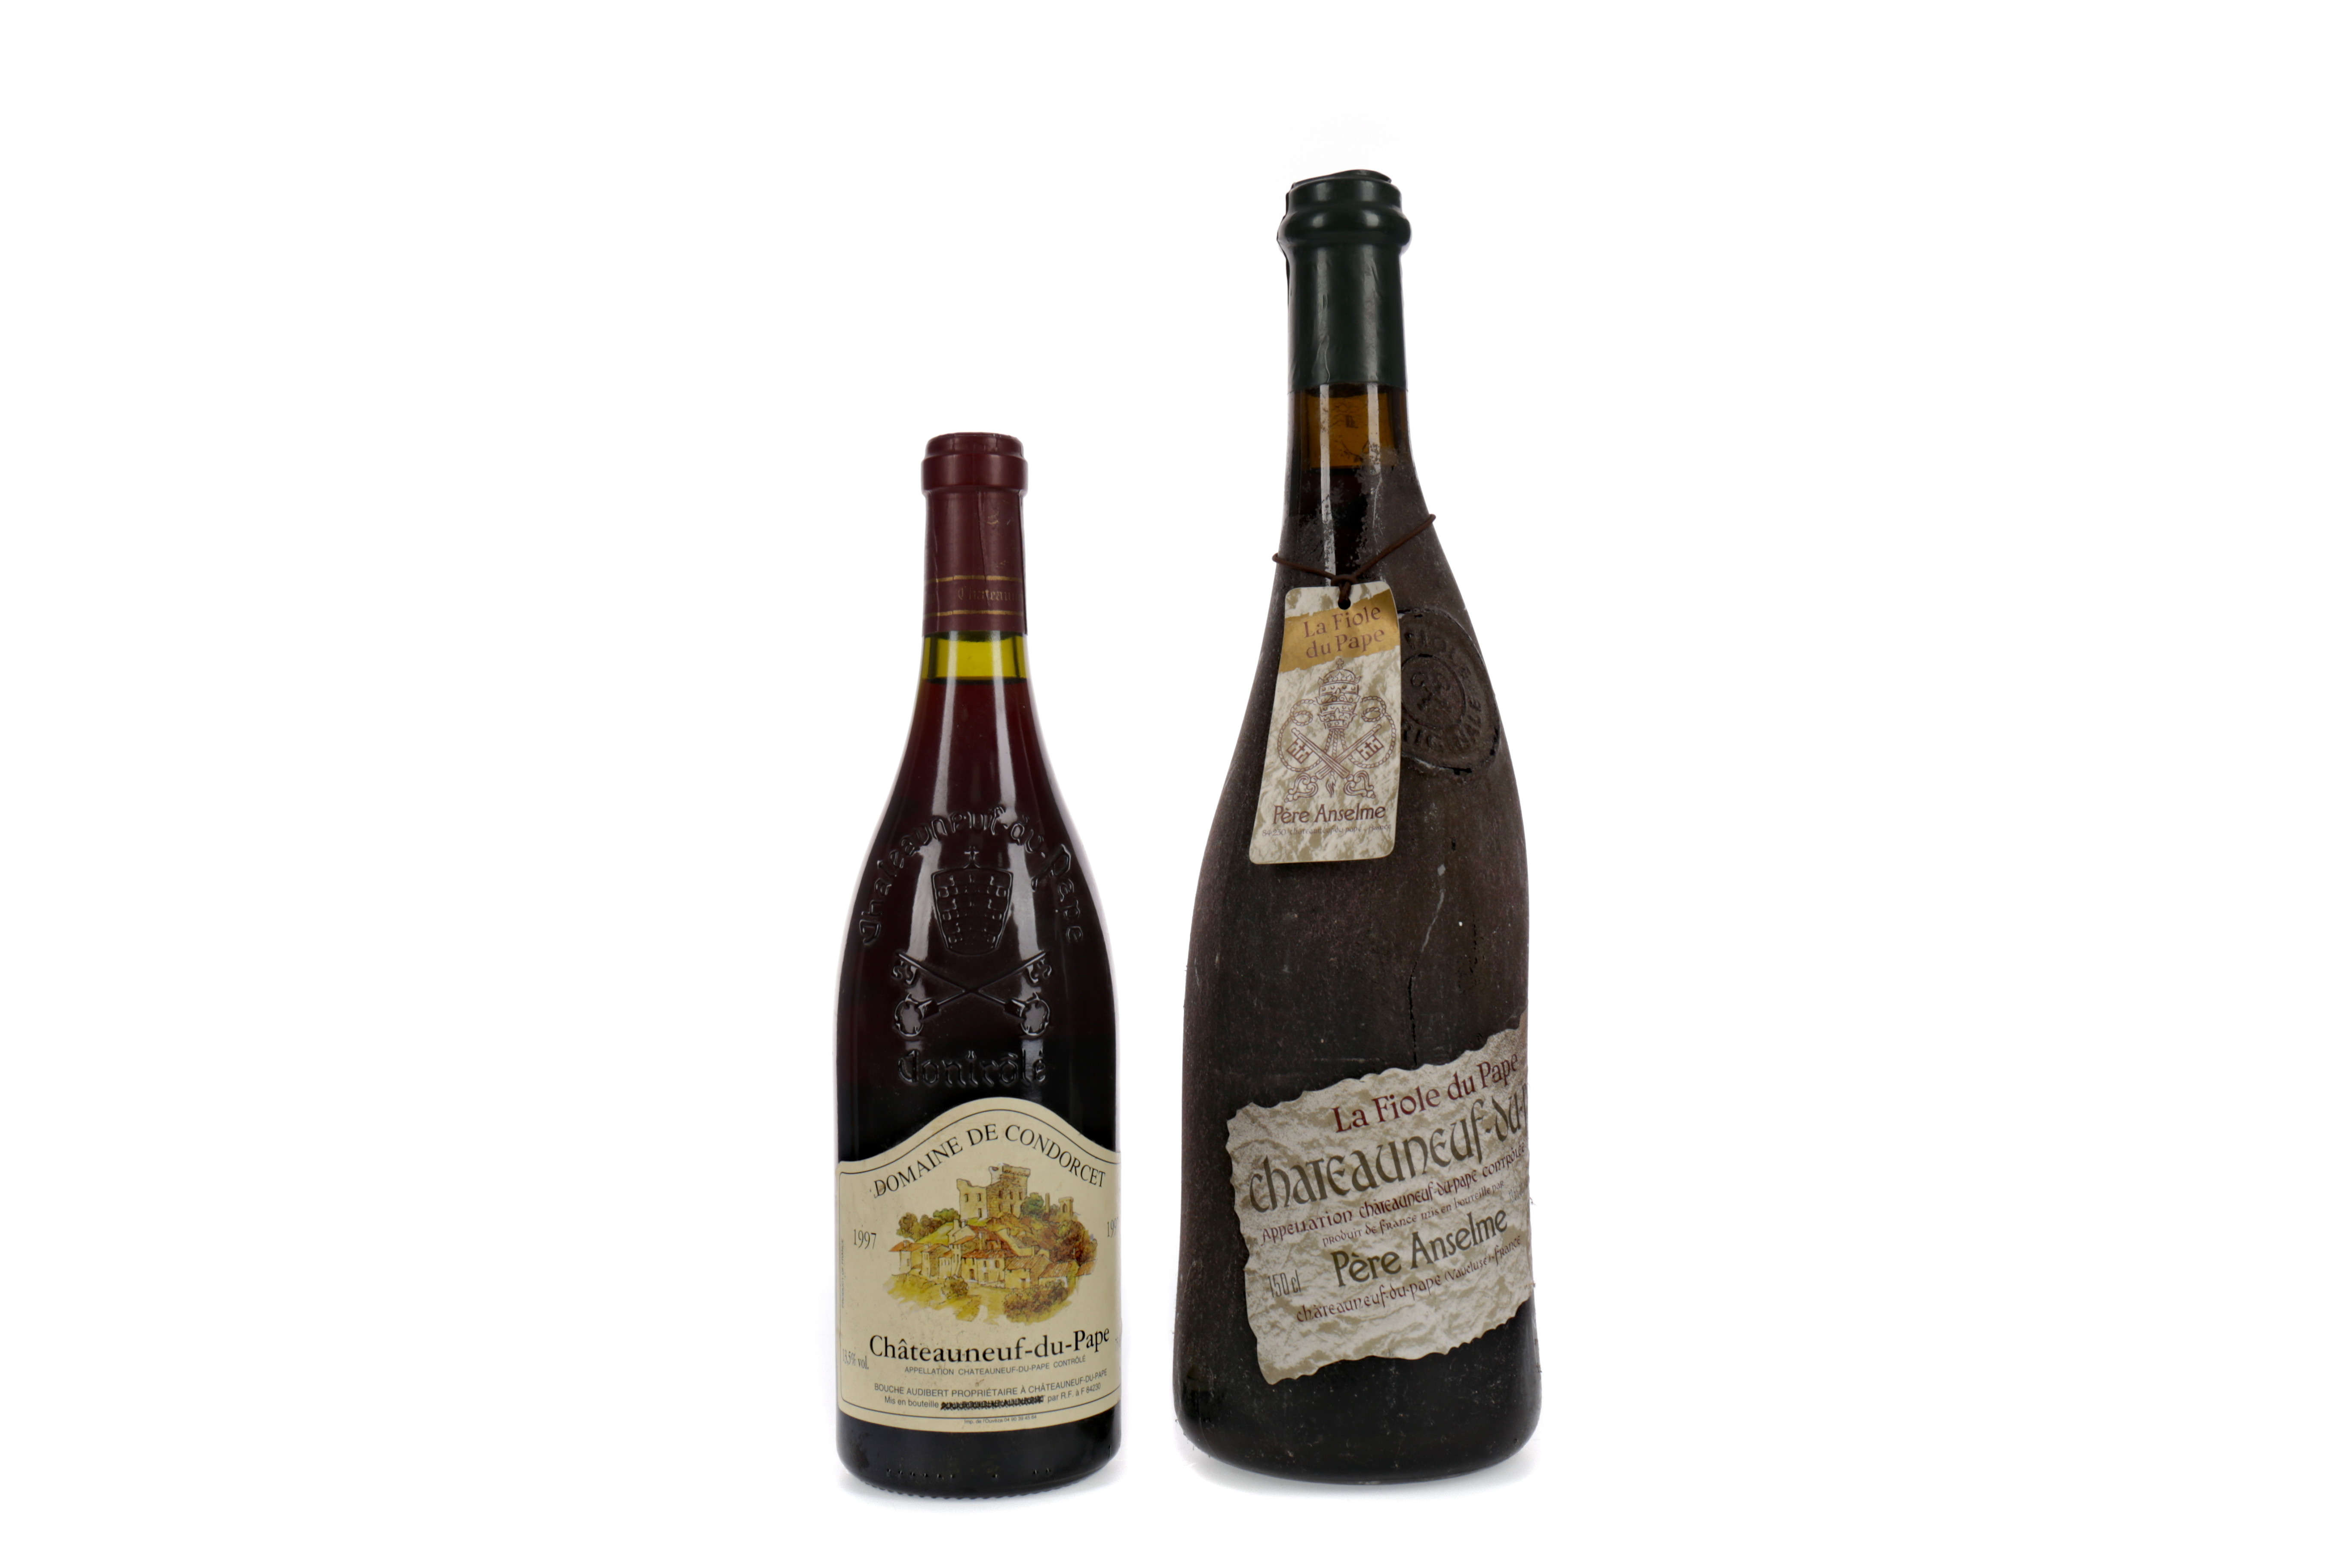 MAGNUM OF PERE ANSELME CHATEANEUF-DU-PAPE AND ONE BOTTLE OF DOMAINE DE CONDERCET 1997